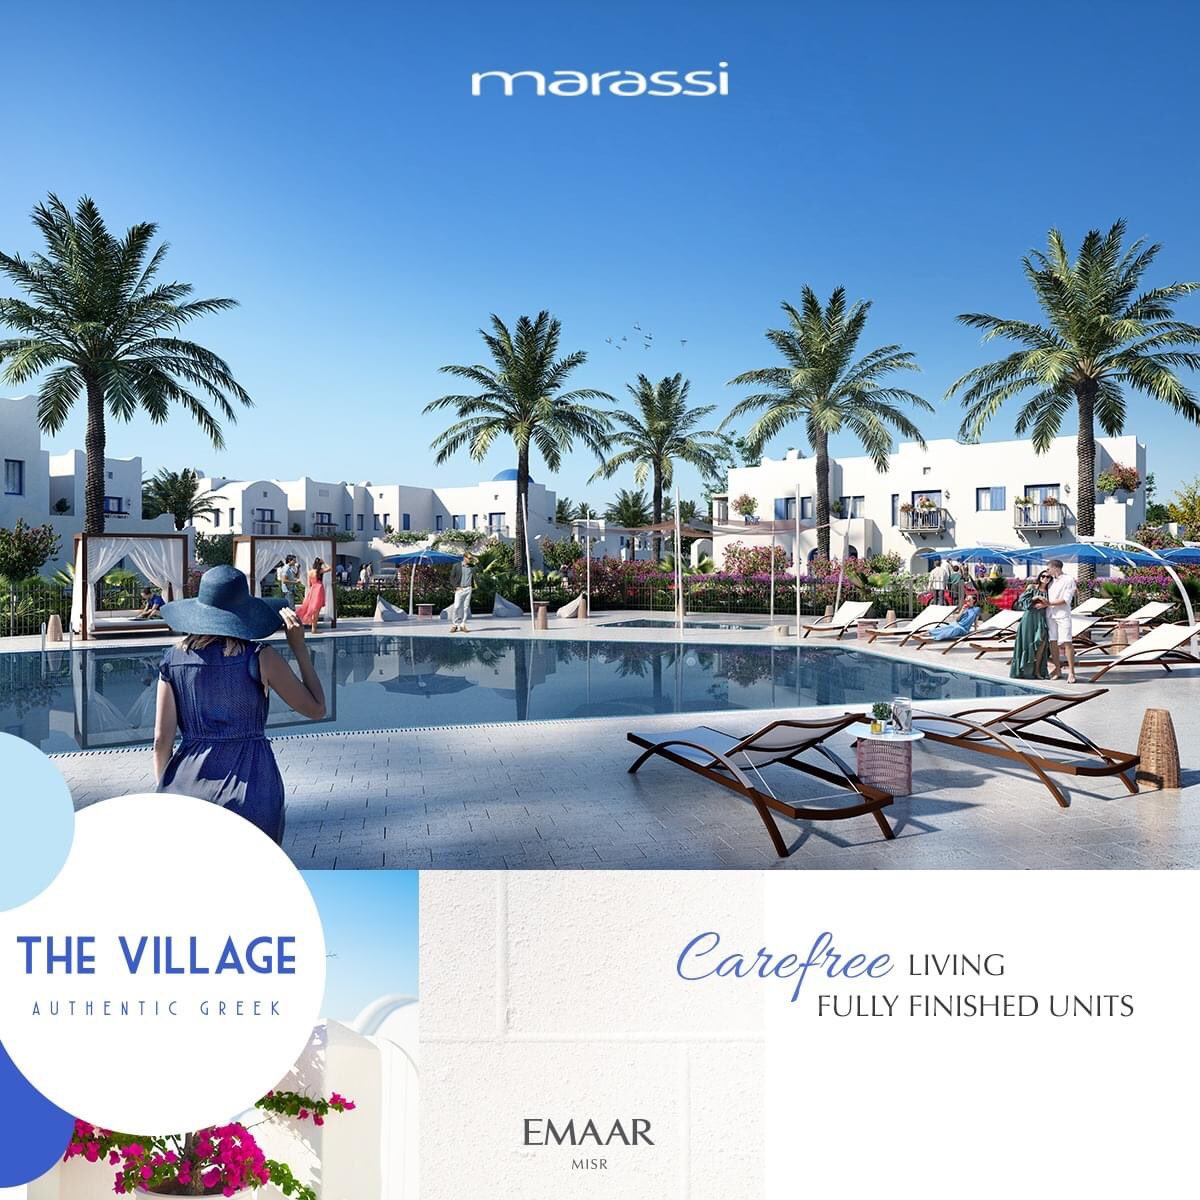 Get enchanted by incredible all-round elevated views from your home at The Village.  Own your summer home now and enjoy complimentary air conditioners for a limited time!  #Emaar #EmaarMisr #TheVillage https://t.co/aP6Z1tHhkg